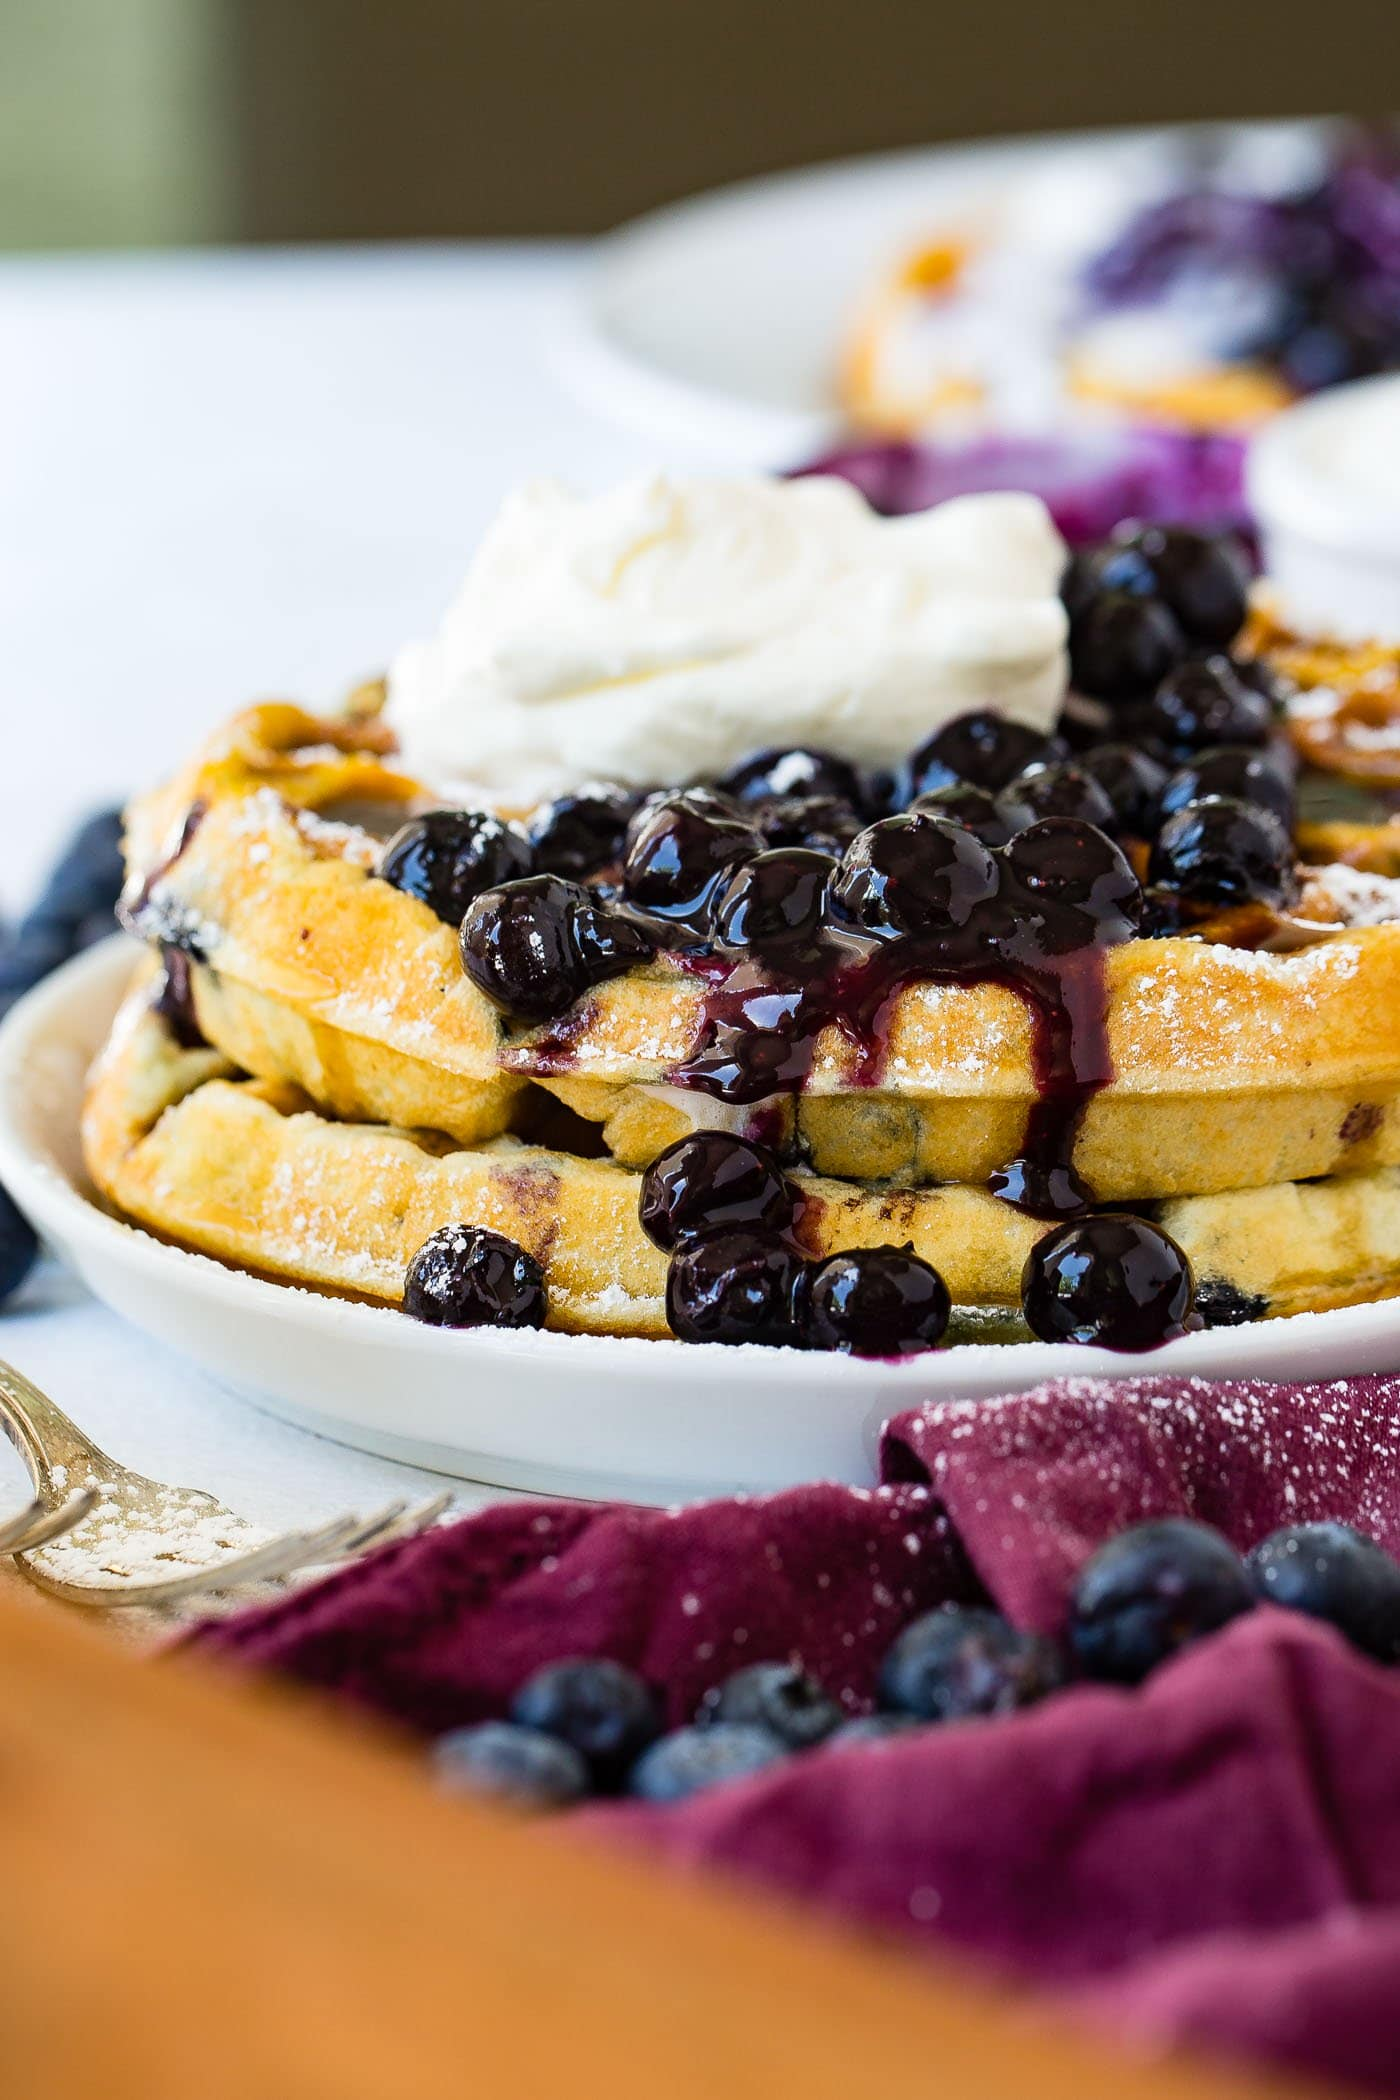 A stack of blueberry waffles on a dinner plate. There is a large scoop of blueberries on top and running down the sides of the waffles. The blueberries are topped with whipped cream. There are fresh blueberries on the table beside the plate.